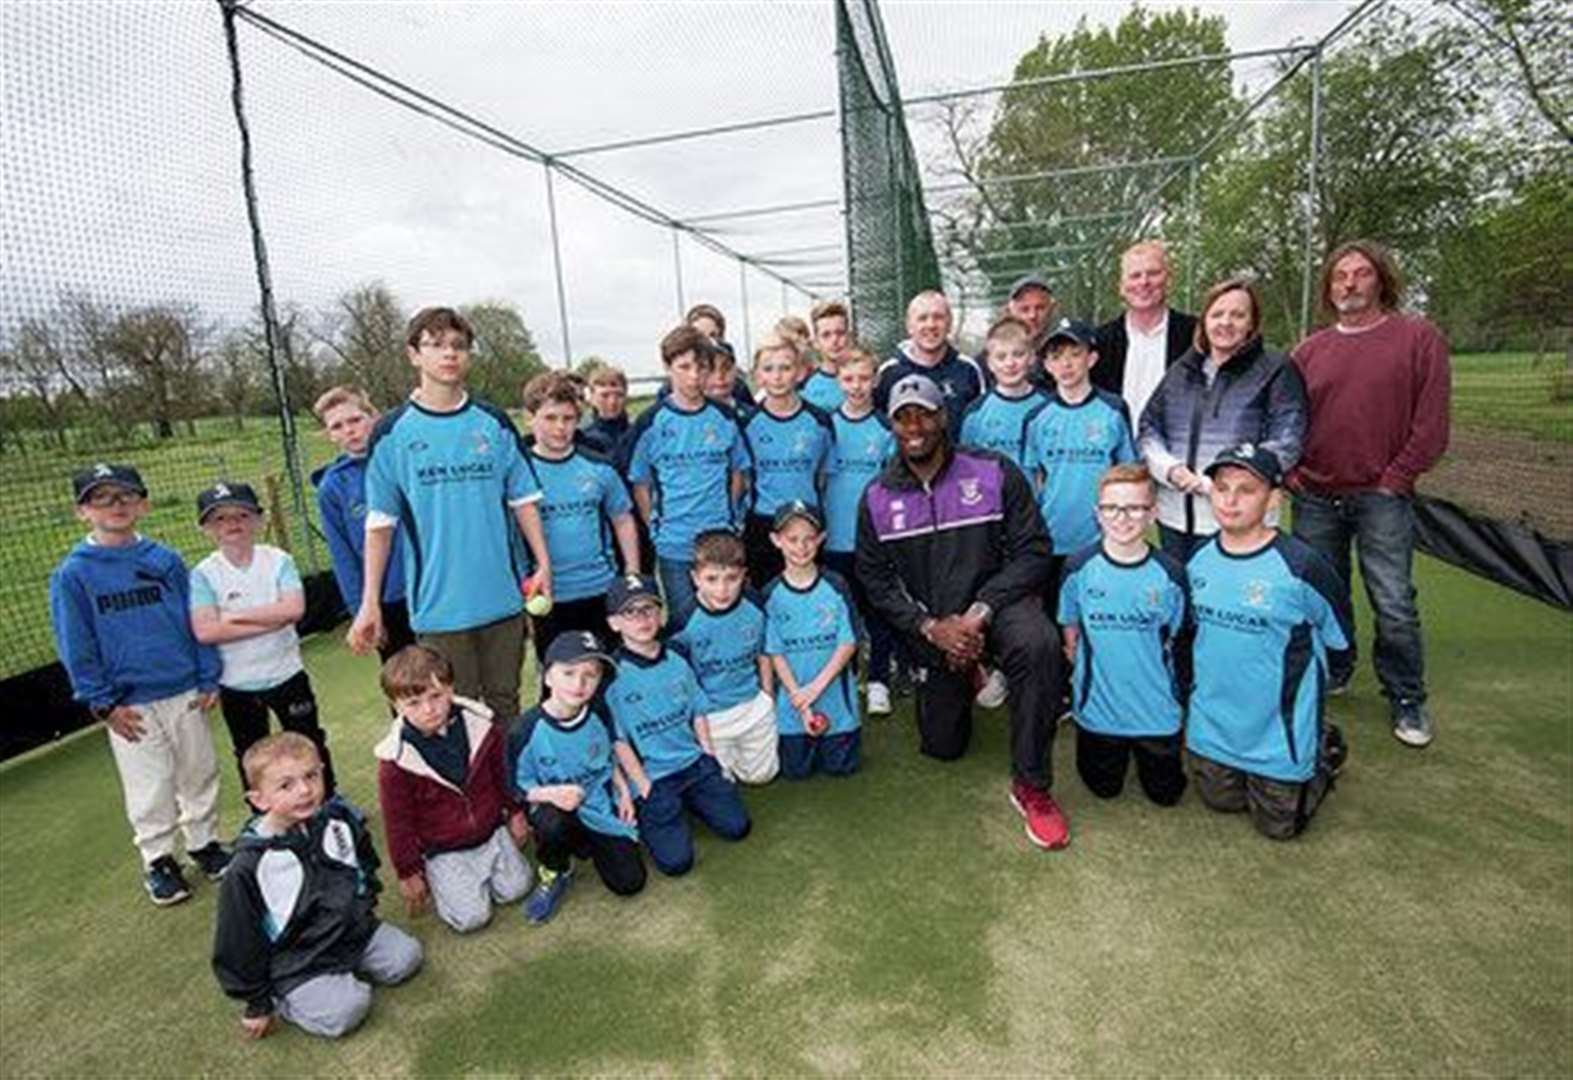 Ex-England cricketer opens Worlington's new net facility